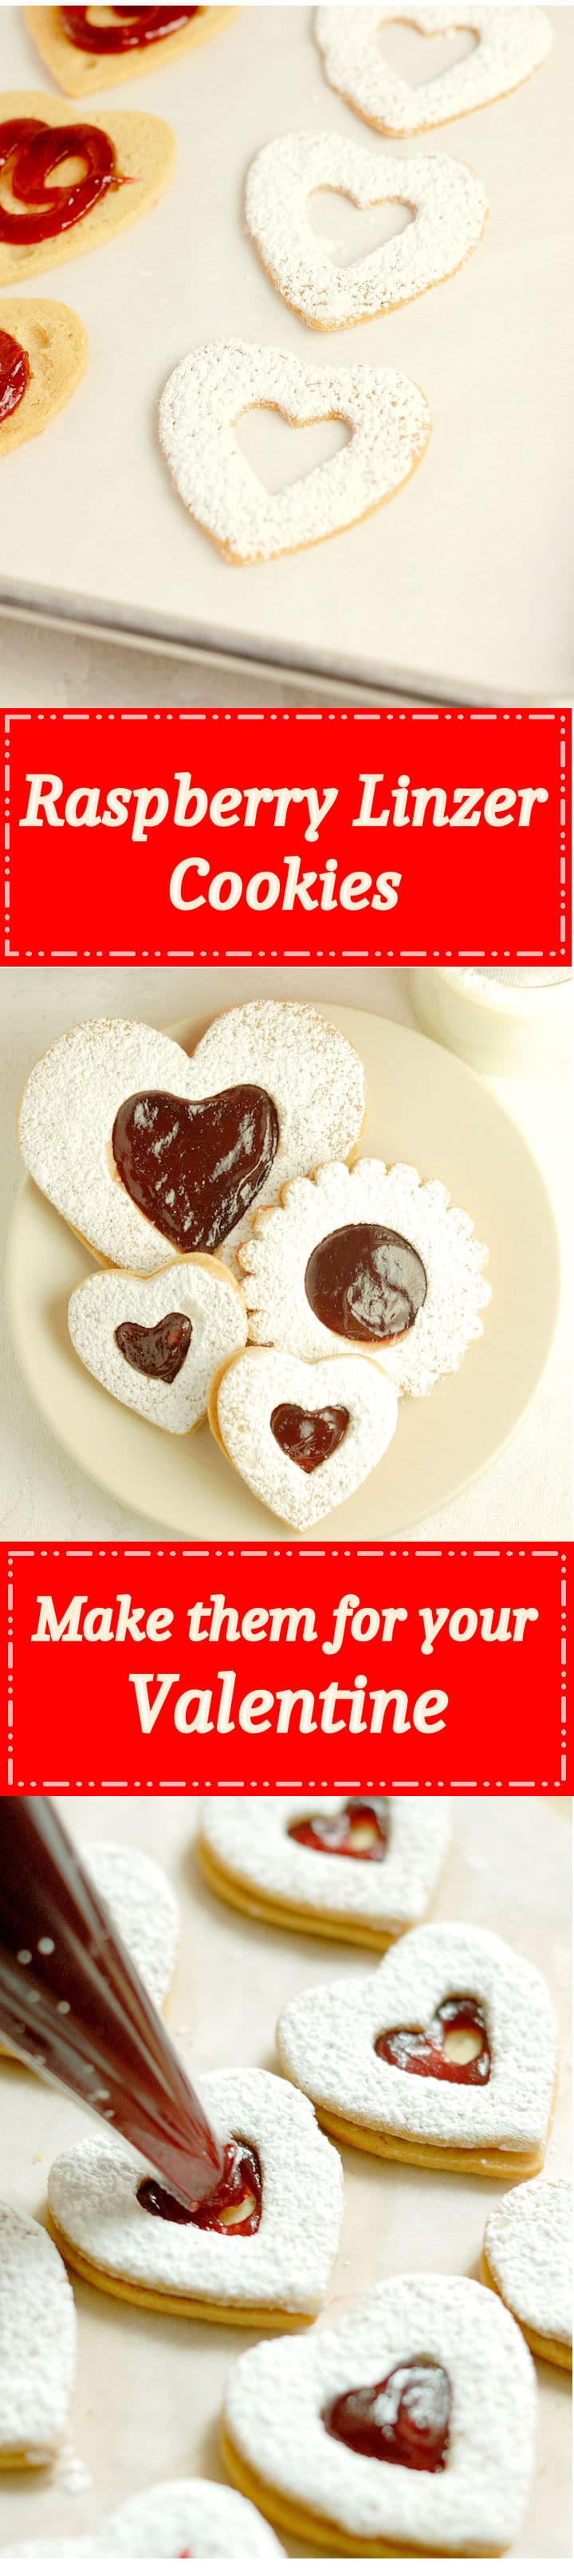 Raspberry Linzer Cookies are eEasy to make and even better the second day. Perfect to make ahead!